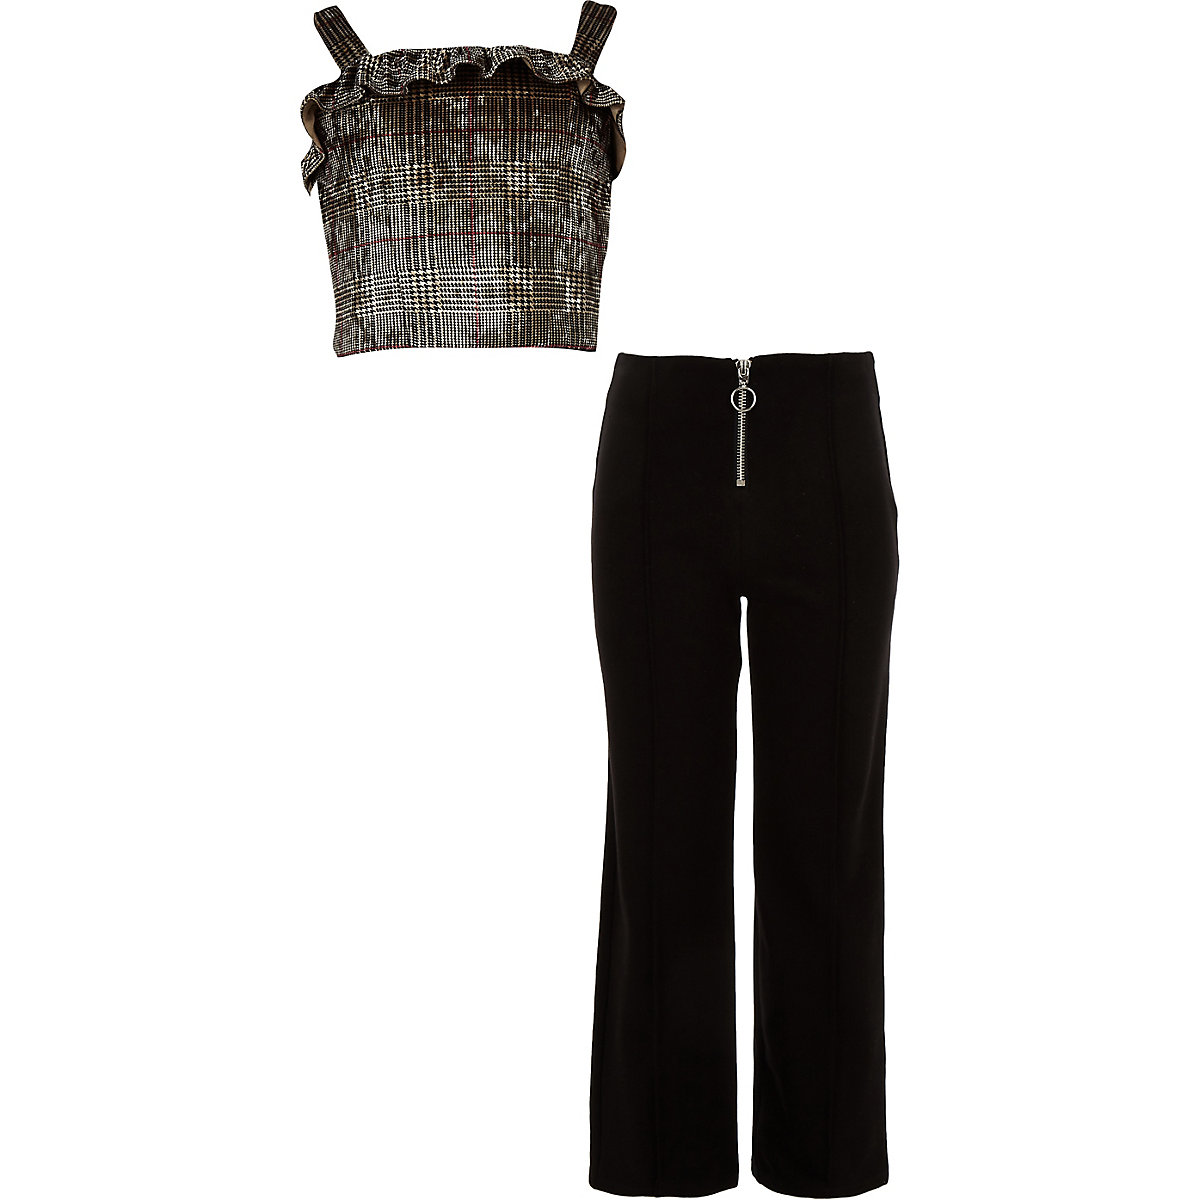 Girls brown check top and pant outfit